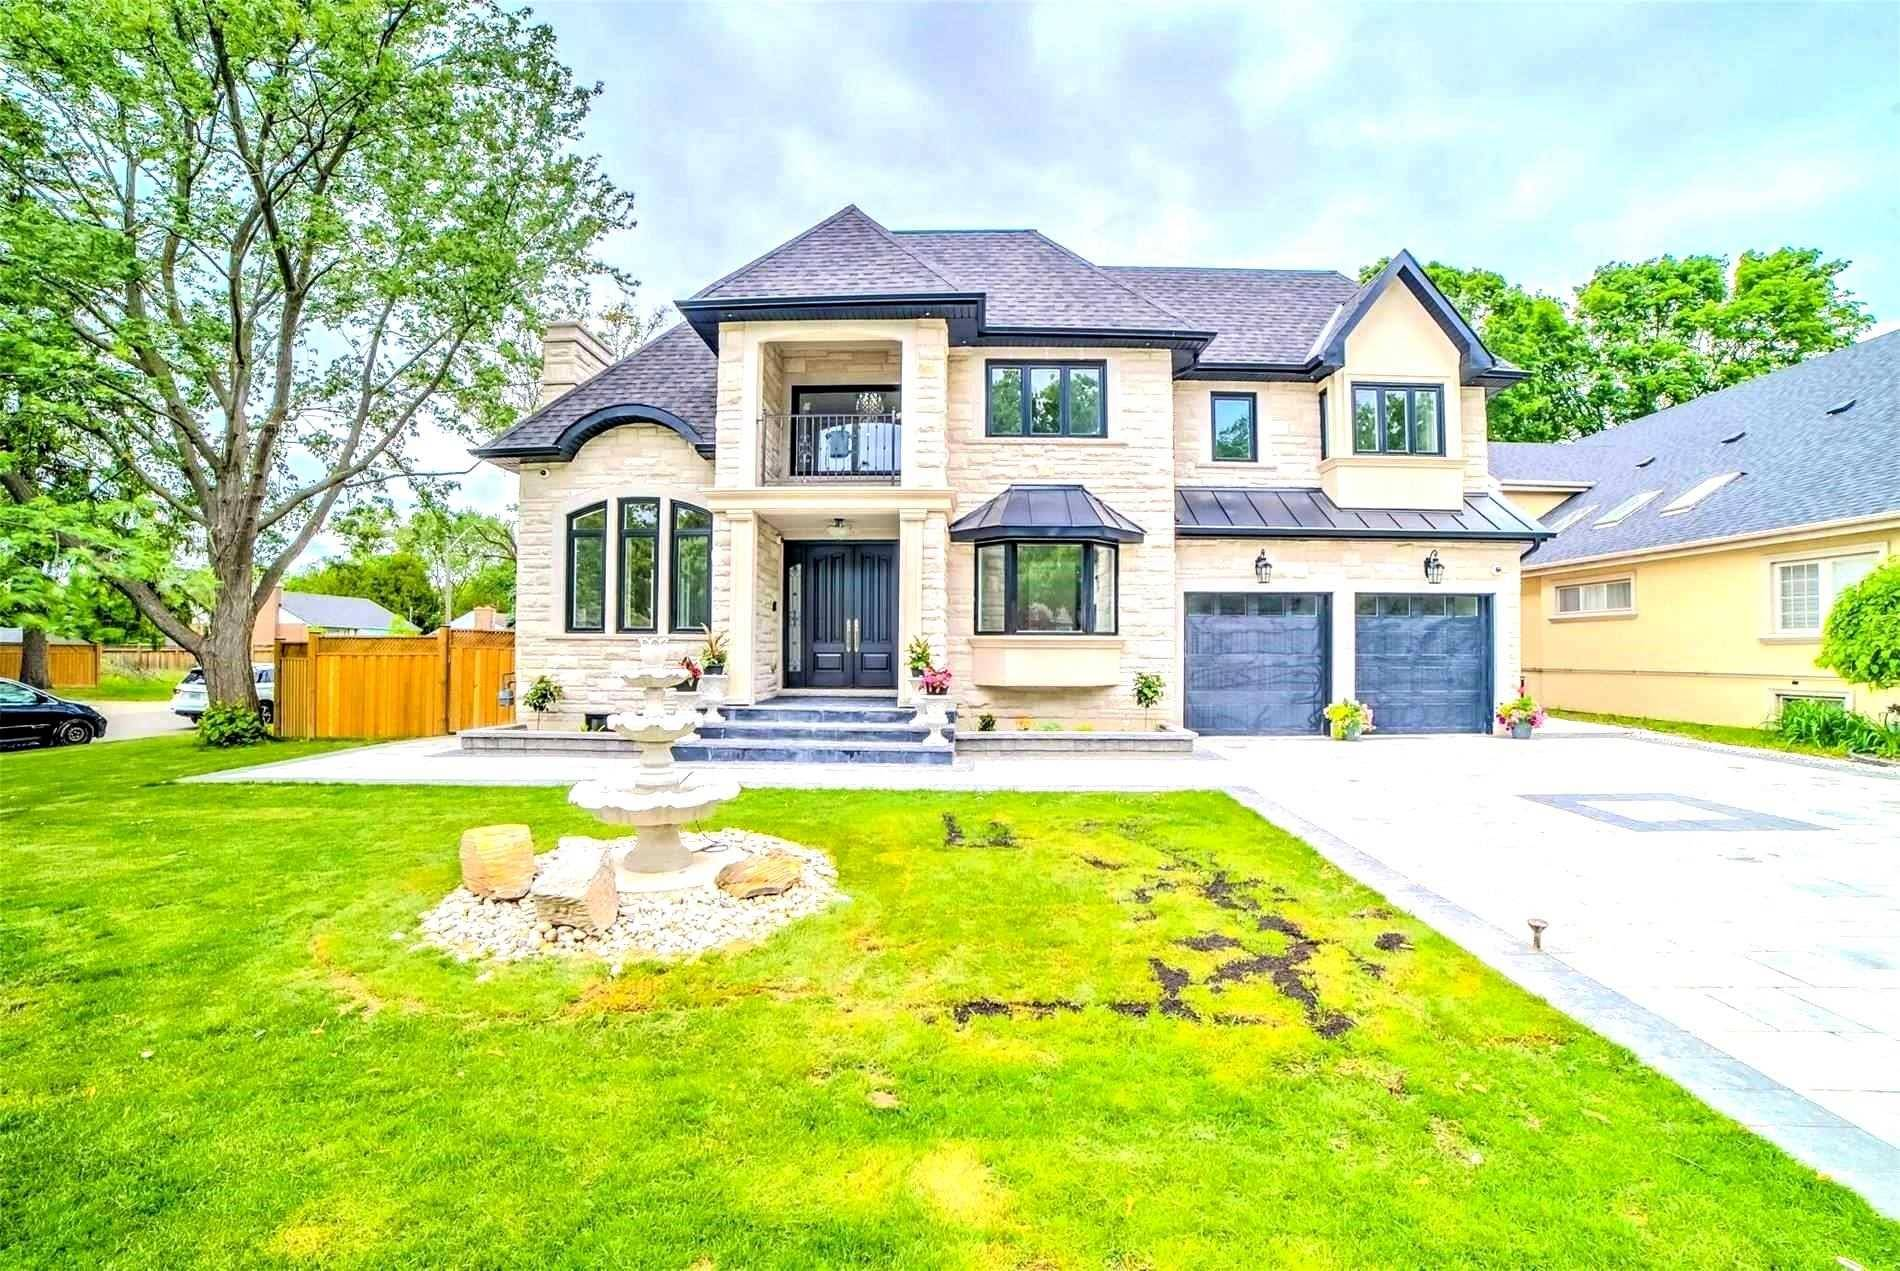 House for sale at 53 Eaglewood Blvd Mississauga Ontario - MLS: W4646443